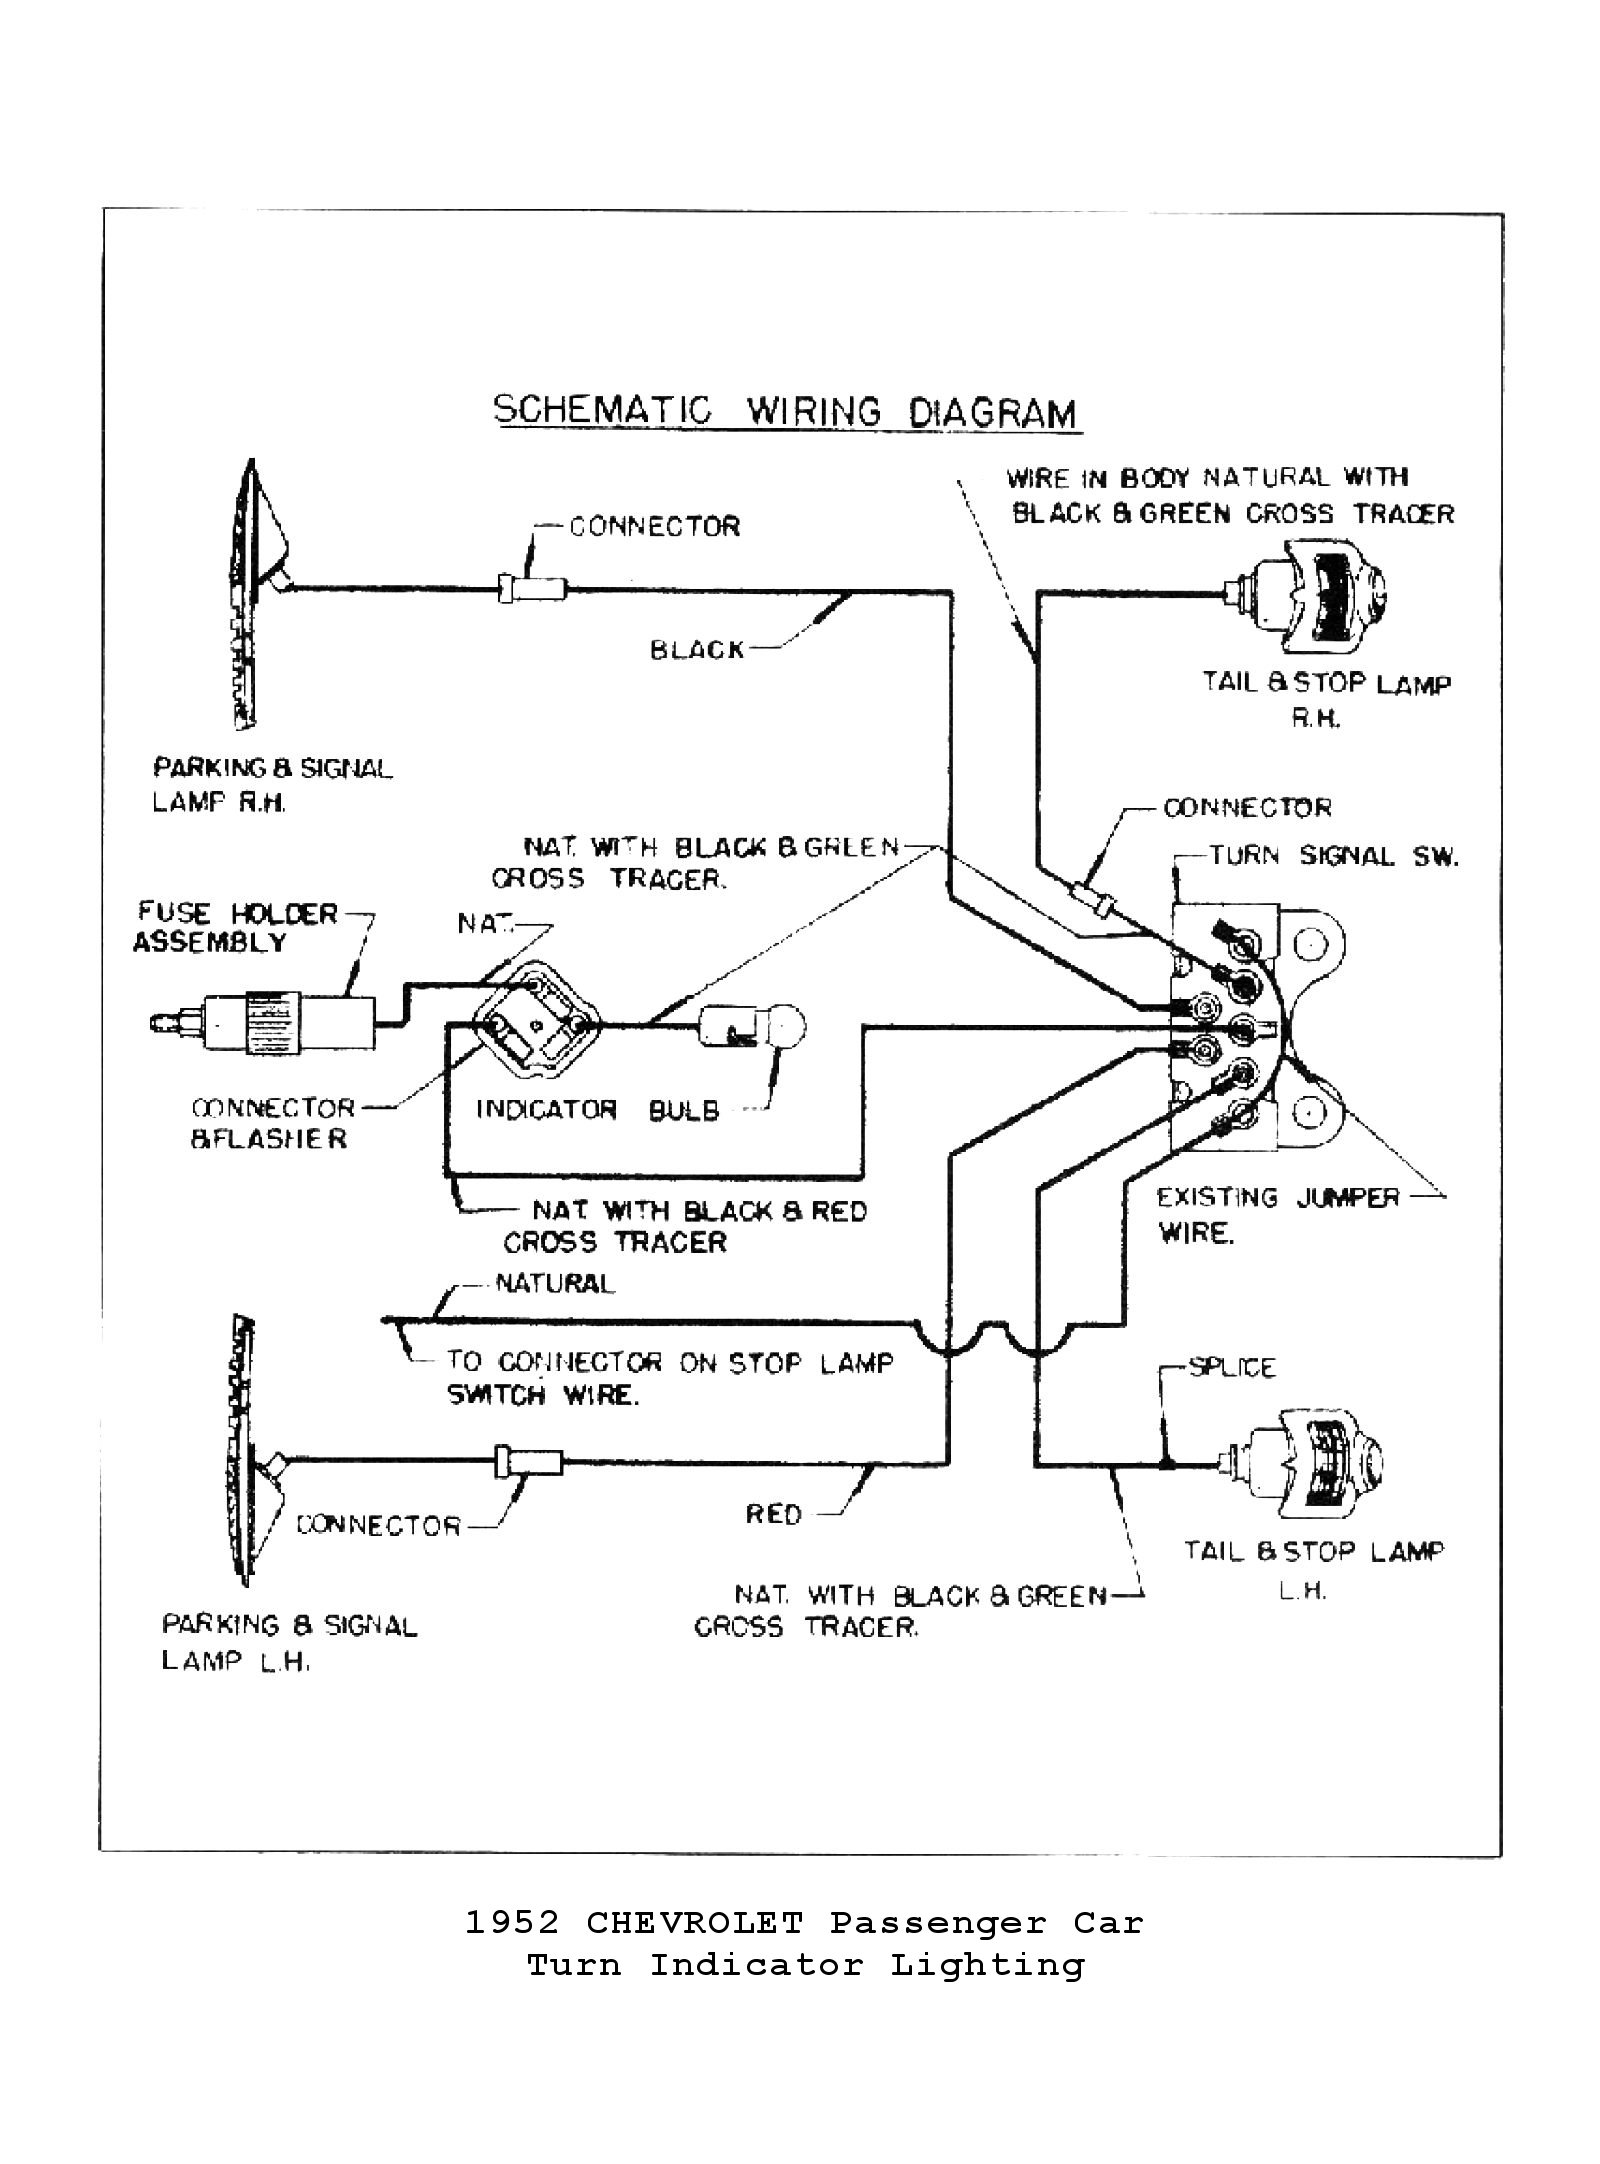 1953 chevy wiring diagram 1953 image wiring diagram 1948 chevy truck wiring diagram 1948 chevy truck wiring diagram on 1953 chevy wiring diagram